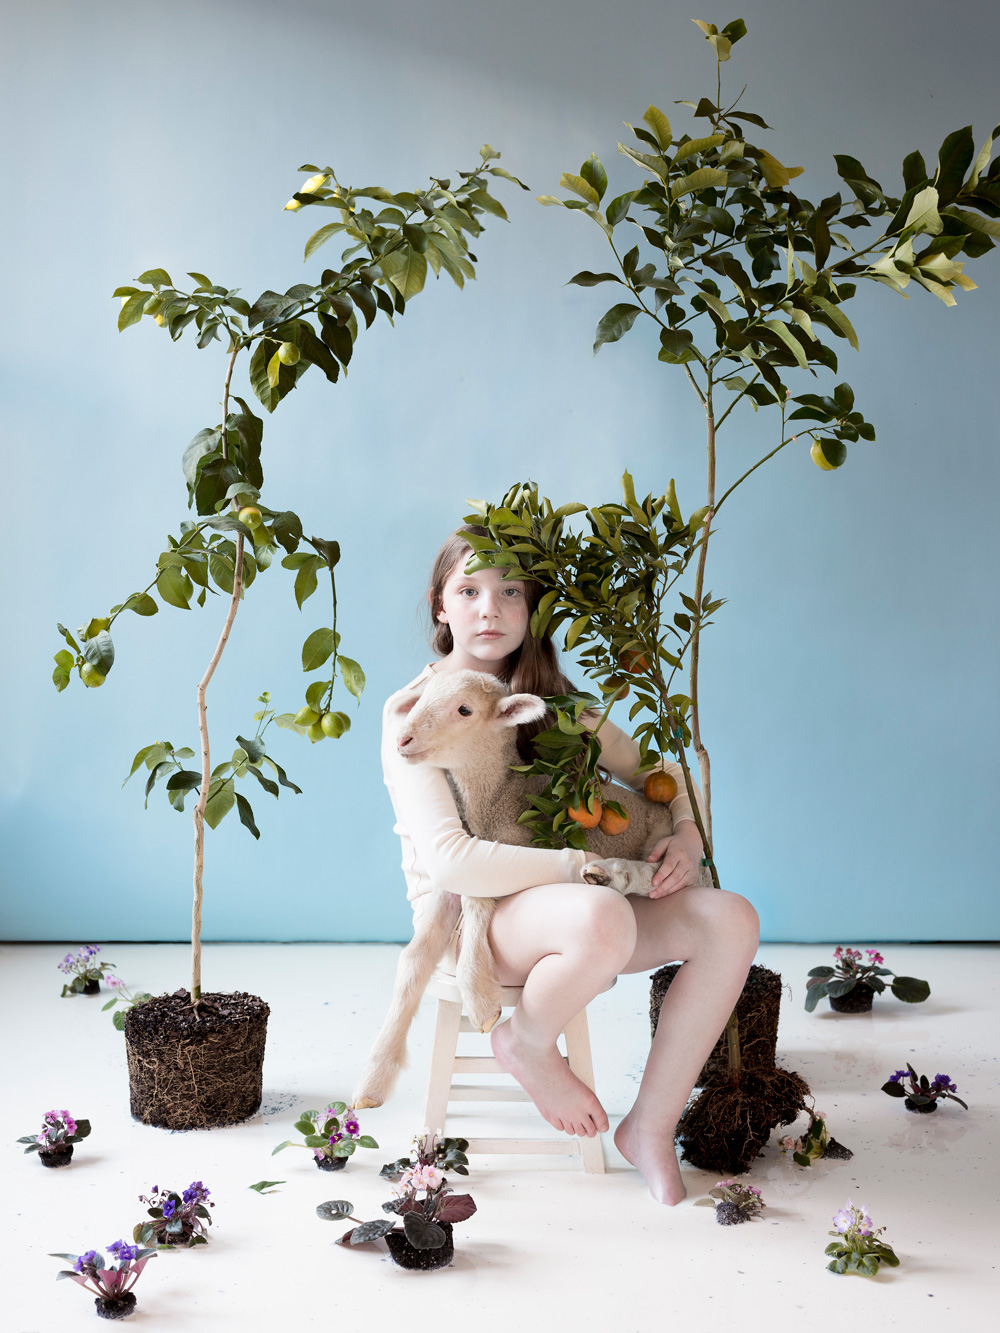 "Bianca, Lamb, Citrus, Flowers, Milk , archival pigment print, 20"" x 16"", edition 3 of 20, 2018."